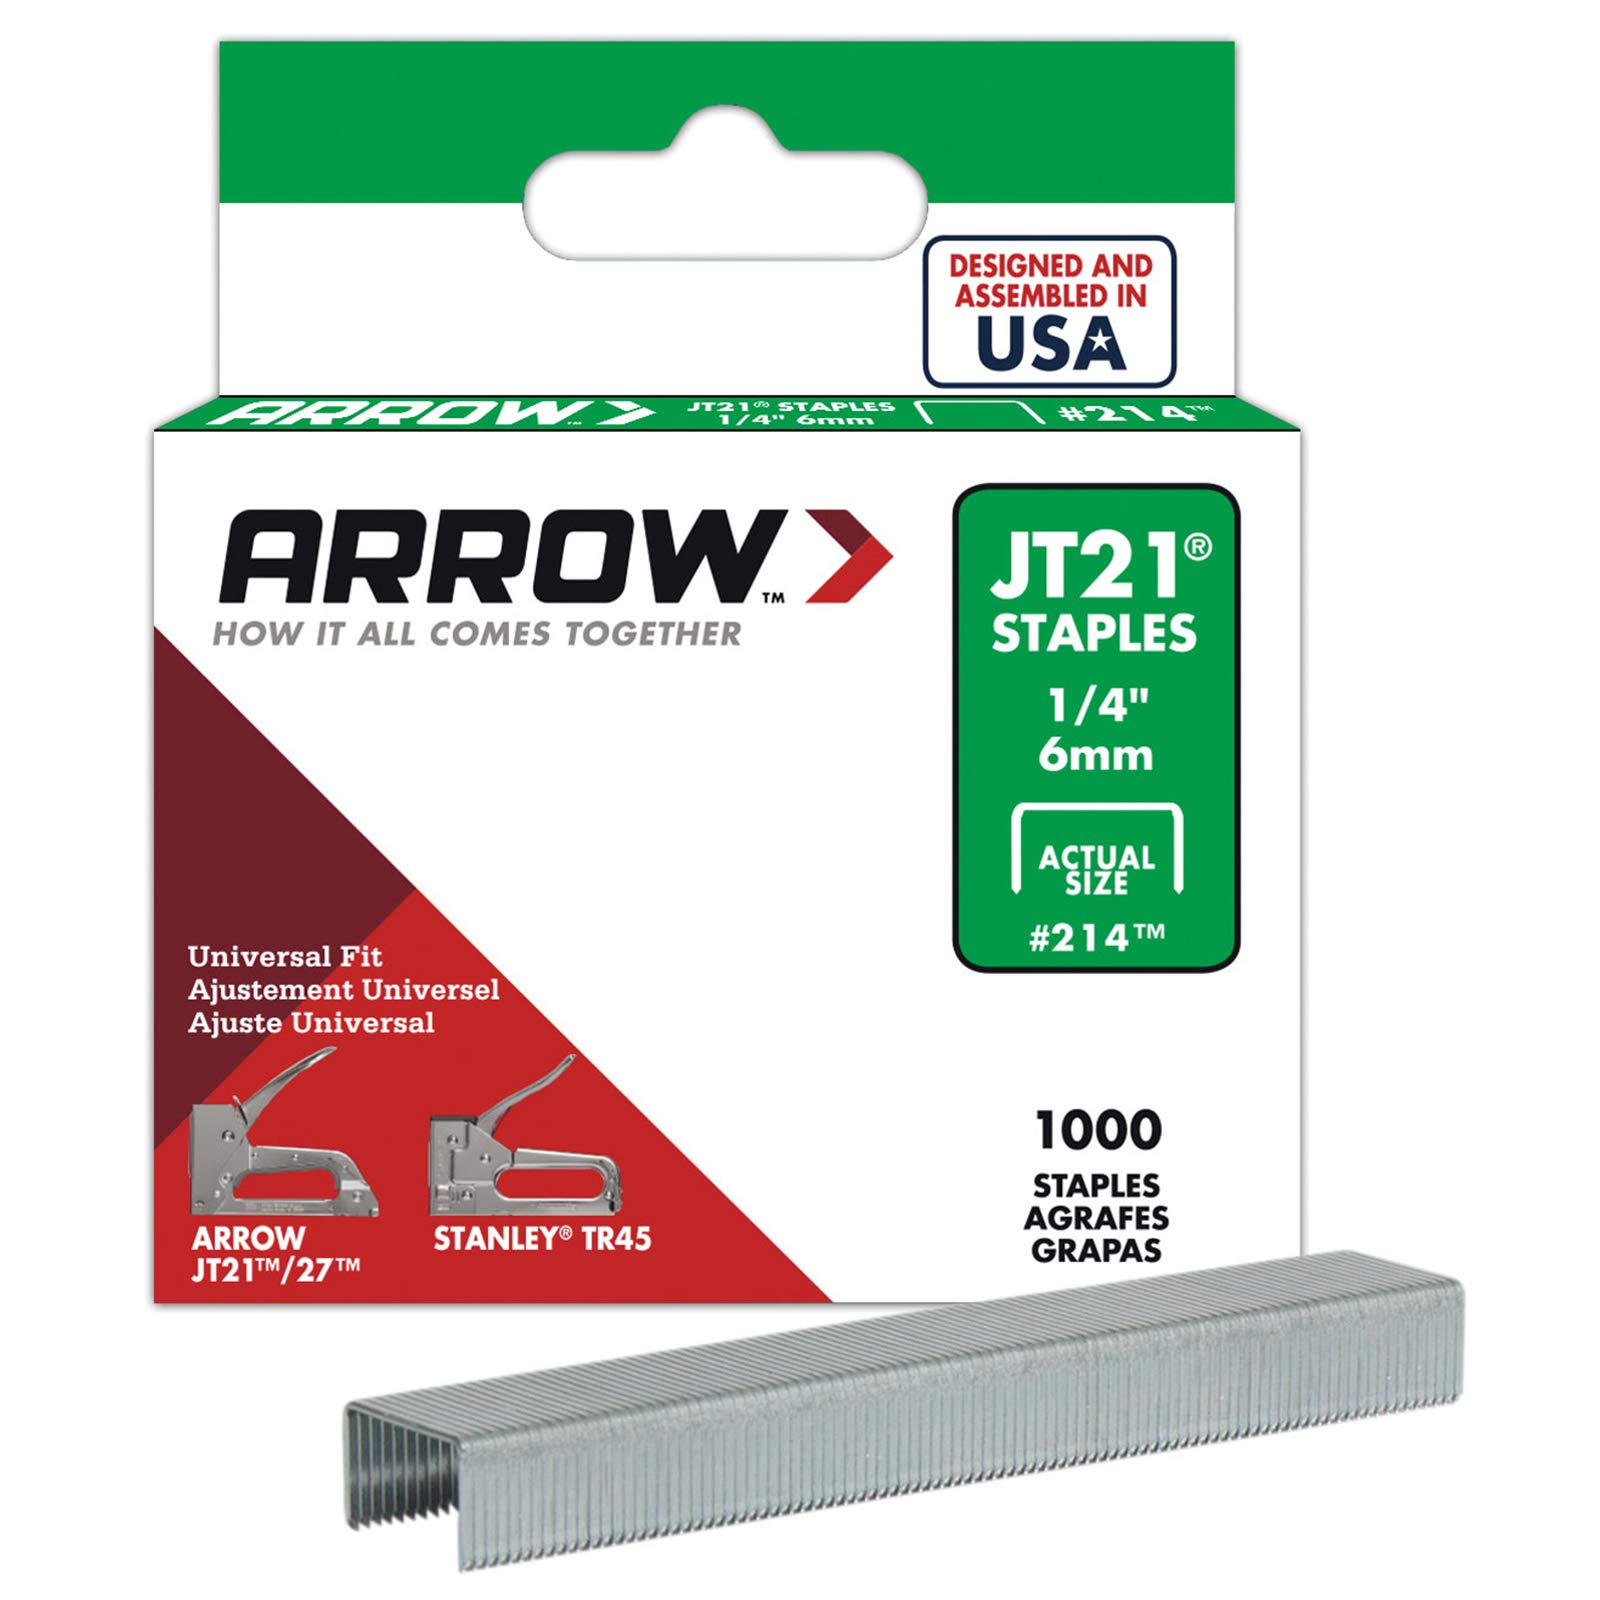 Arrow Fastener 214 Genuine JT21 1/4-Inch Staples, 1,000-Staples